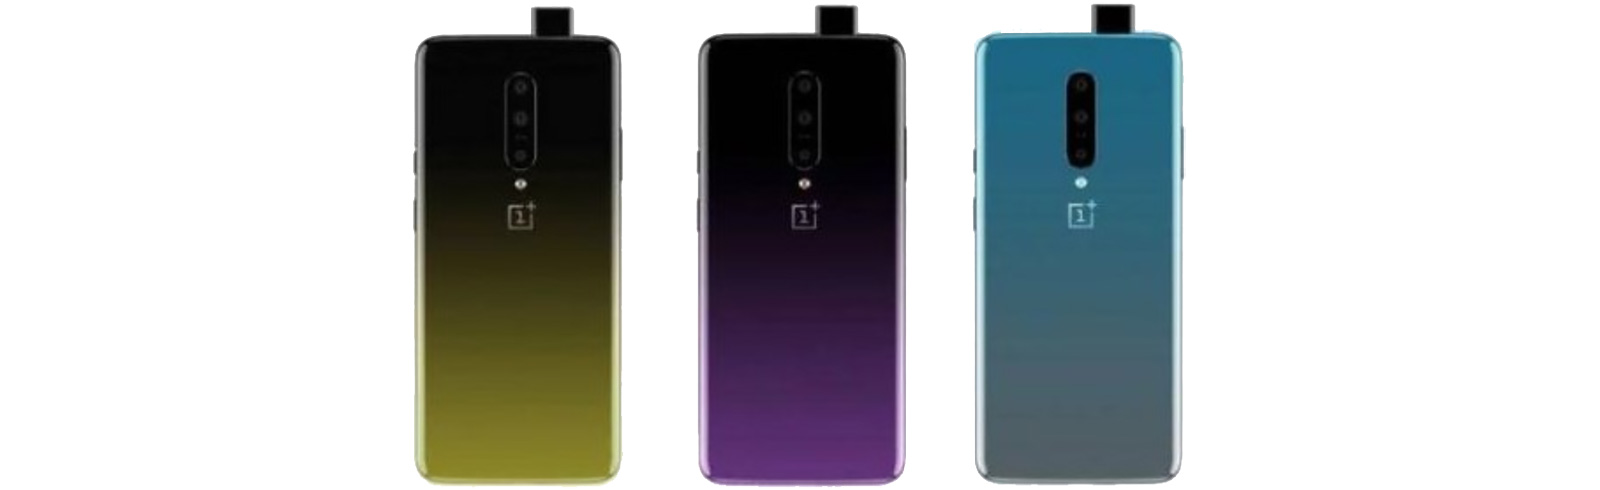 OnePlus 7 is nearing launch or is it an April Fools Day joke?